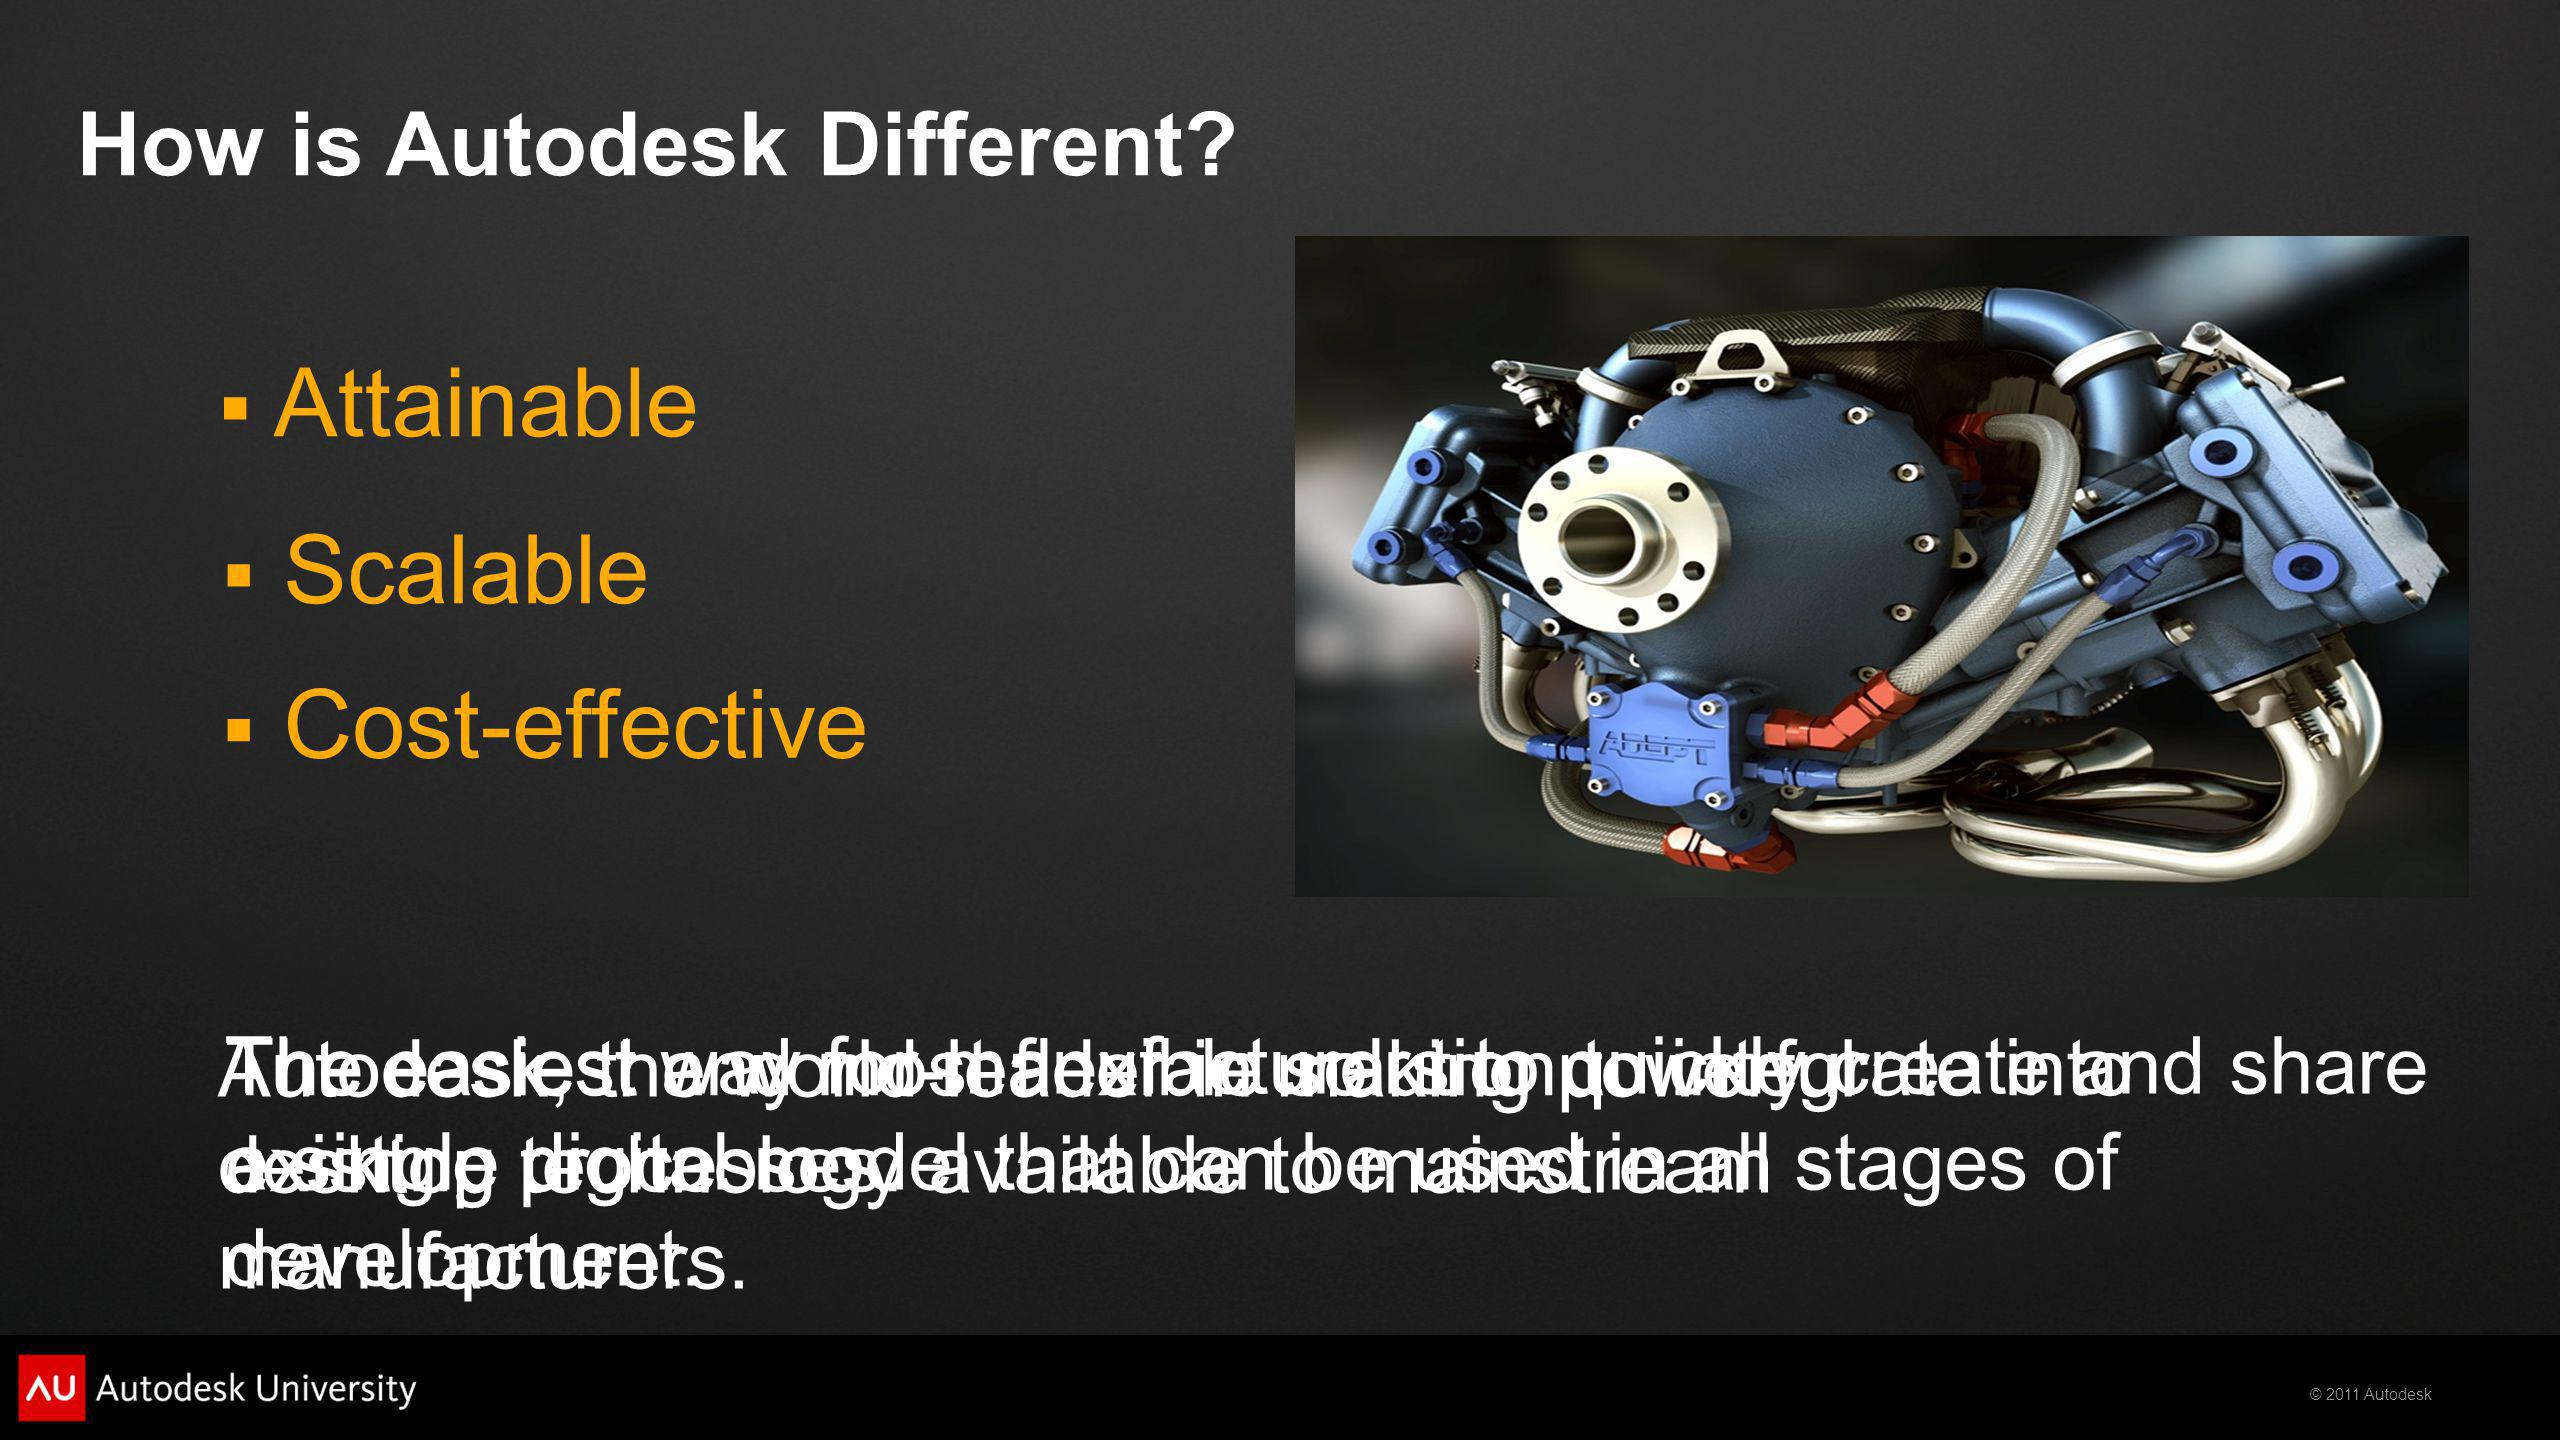 Attainable Scalable Cost-effective How is Autodesk Different